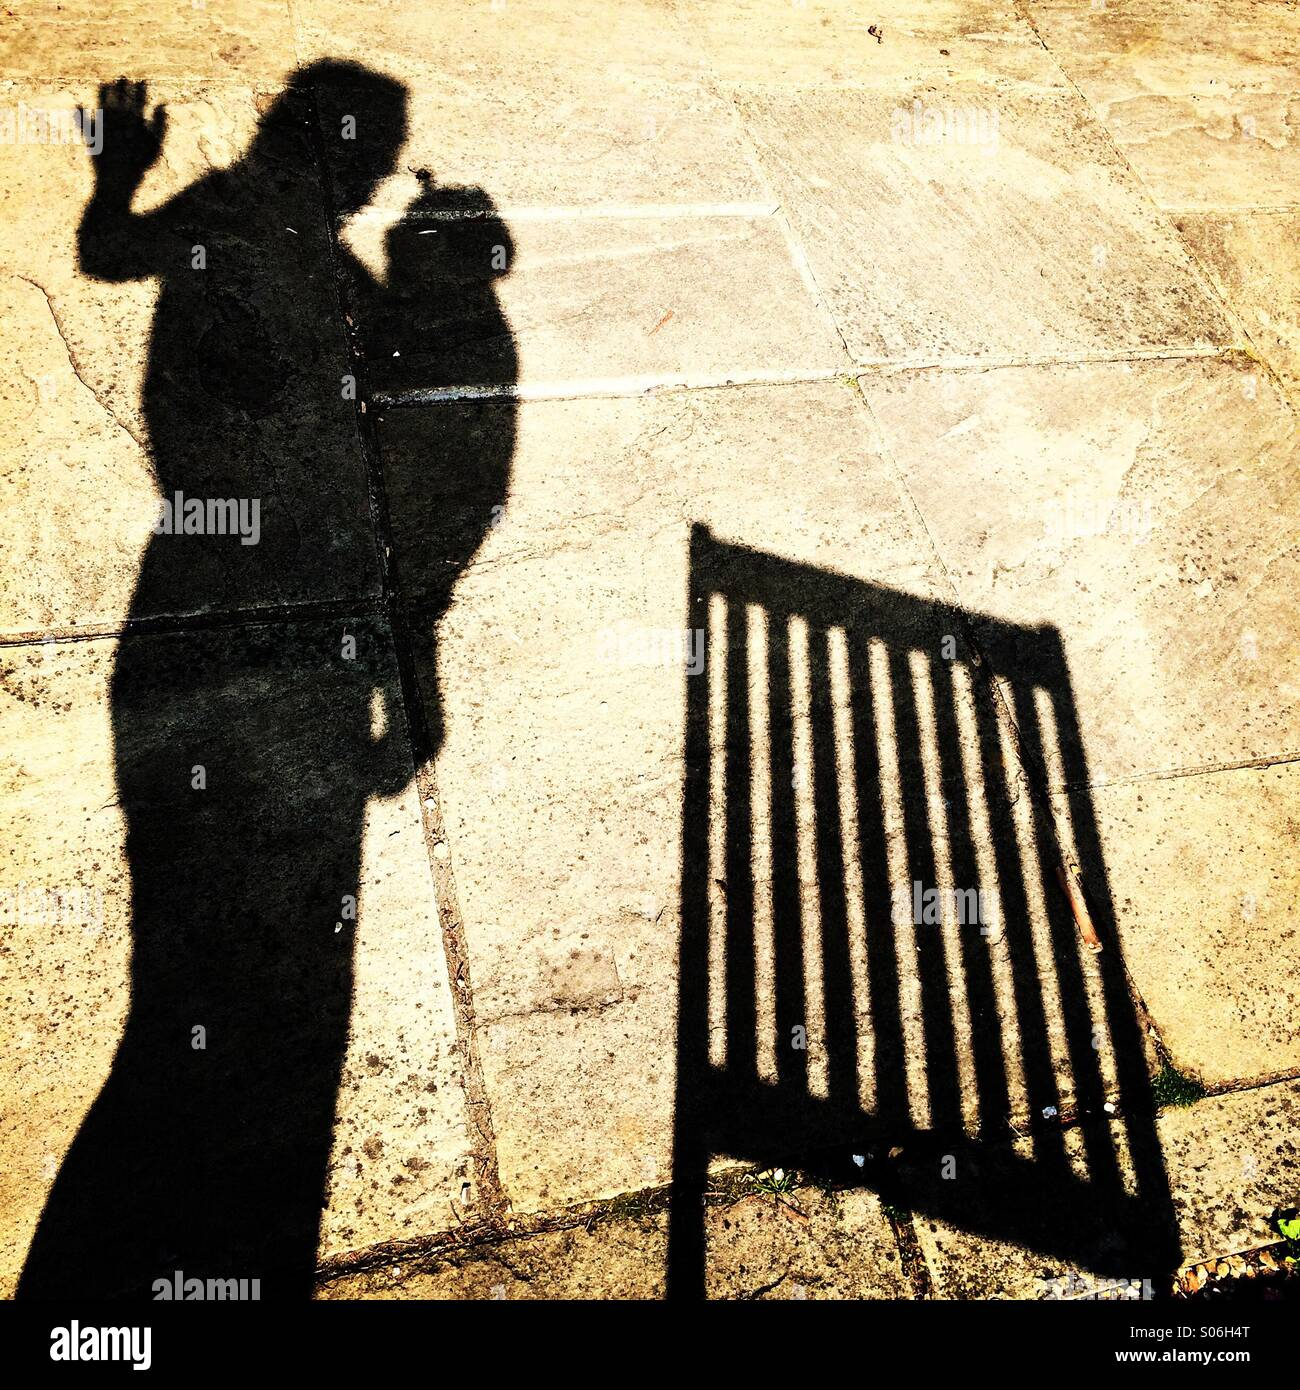 Silhouette of a mum and her baby in a sling next to a deck chair - Stock Image